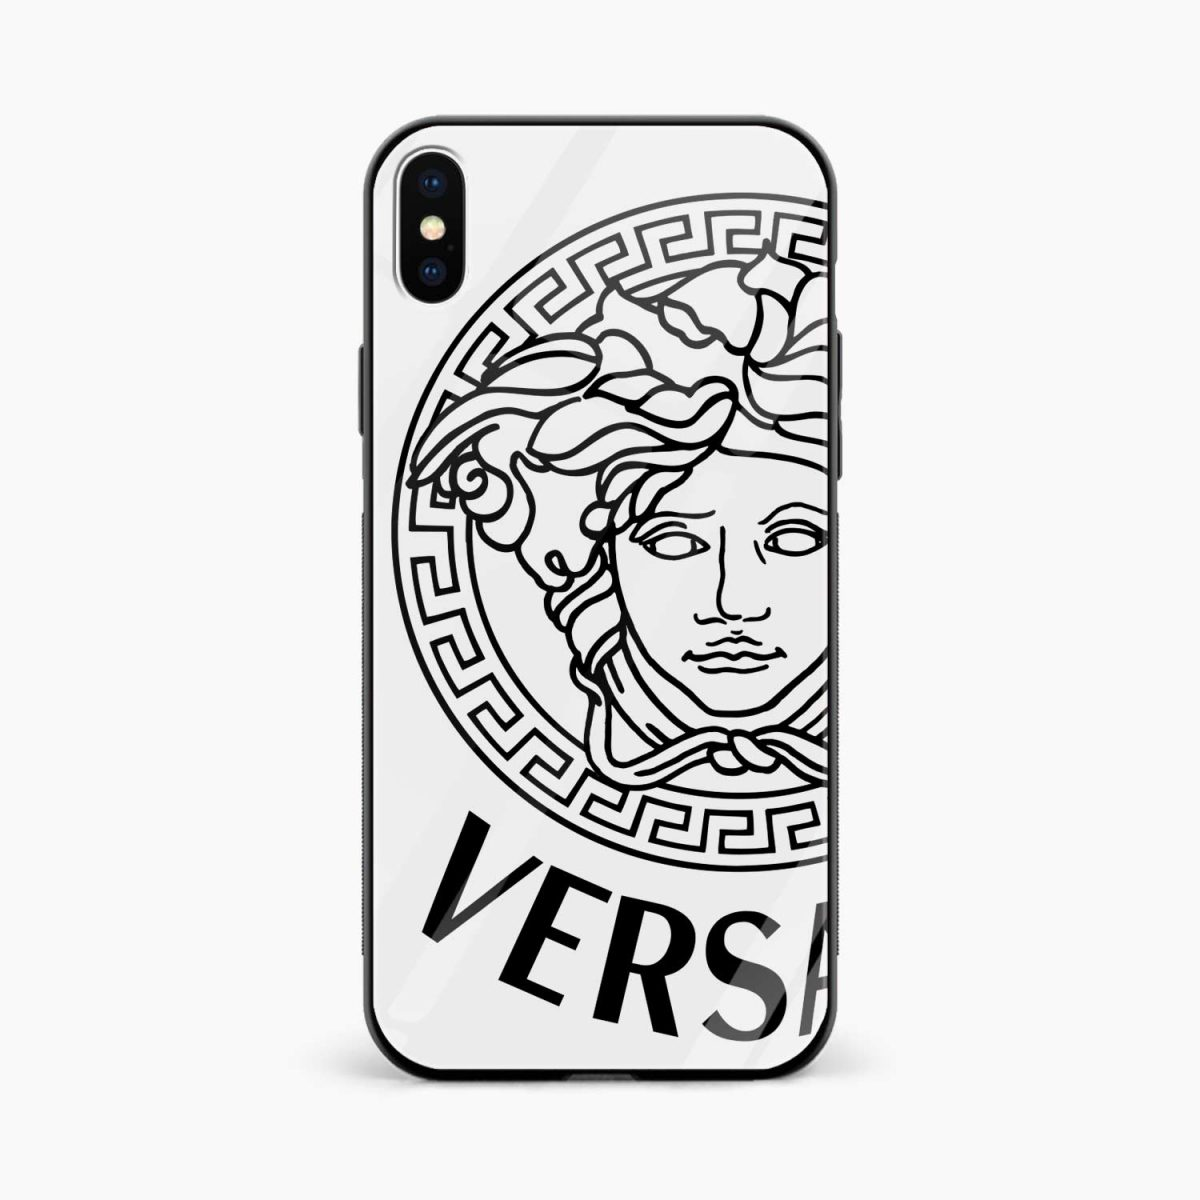 versace black white front view apple iphone x xs max back cover